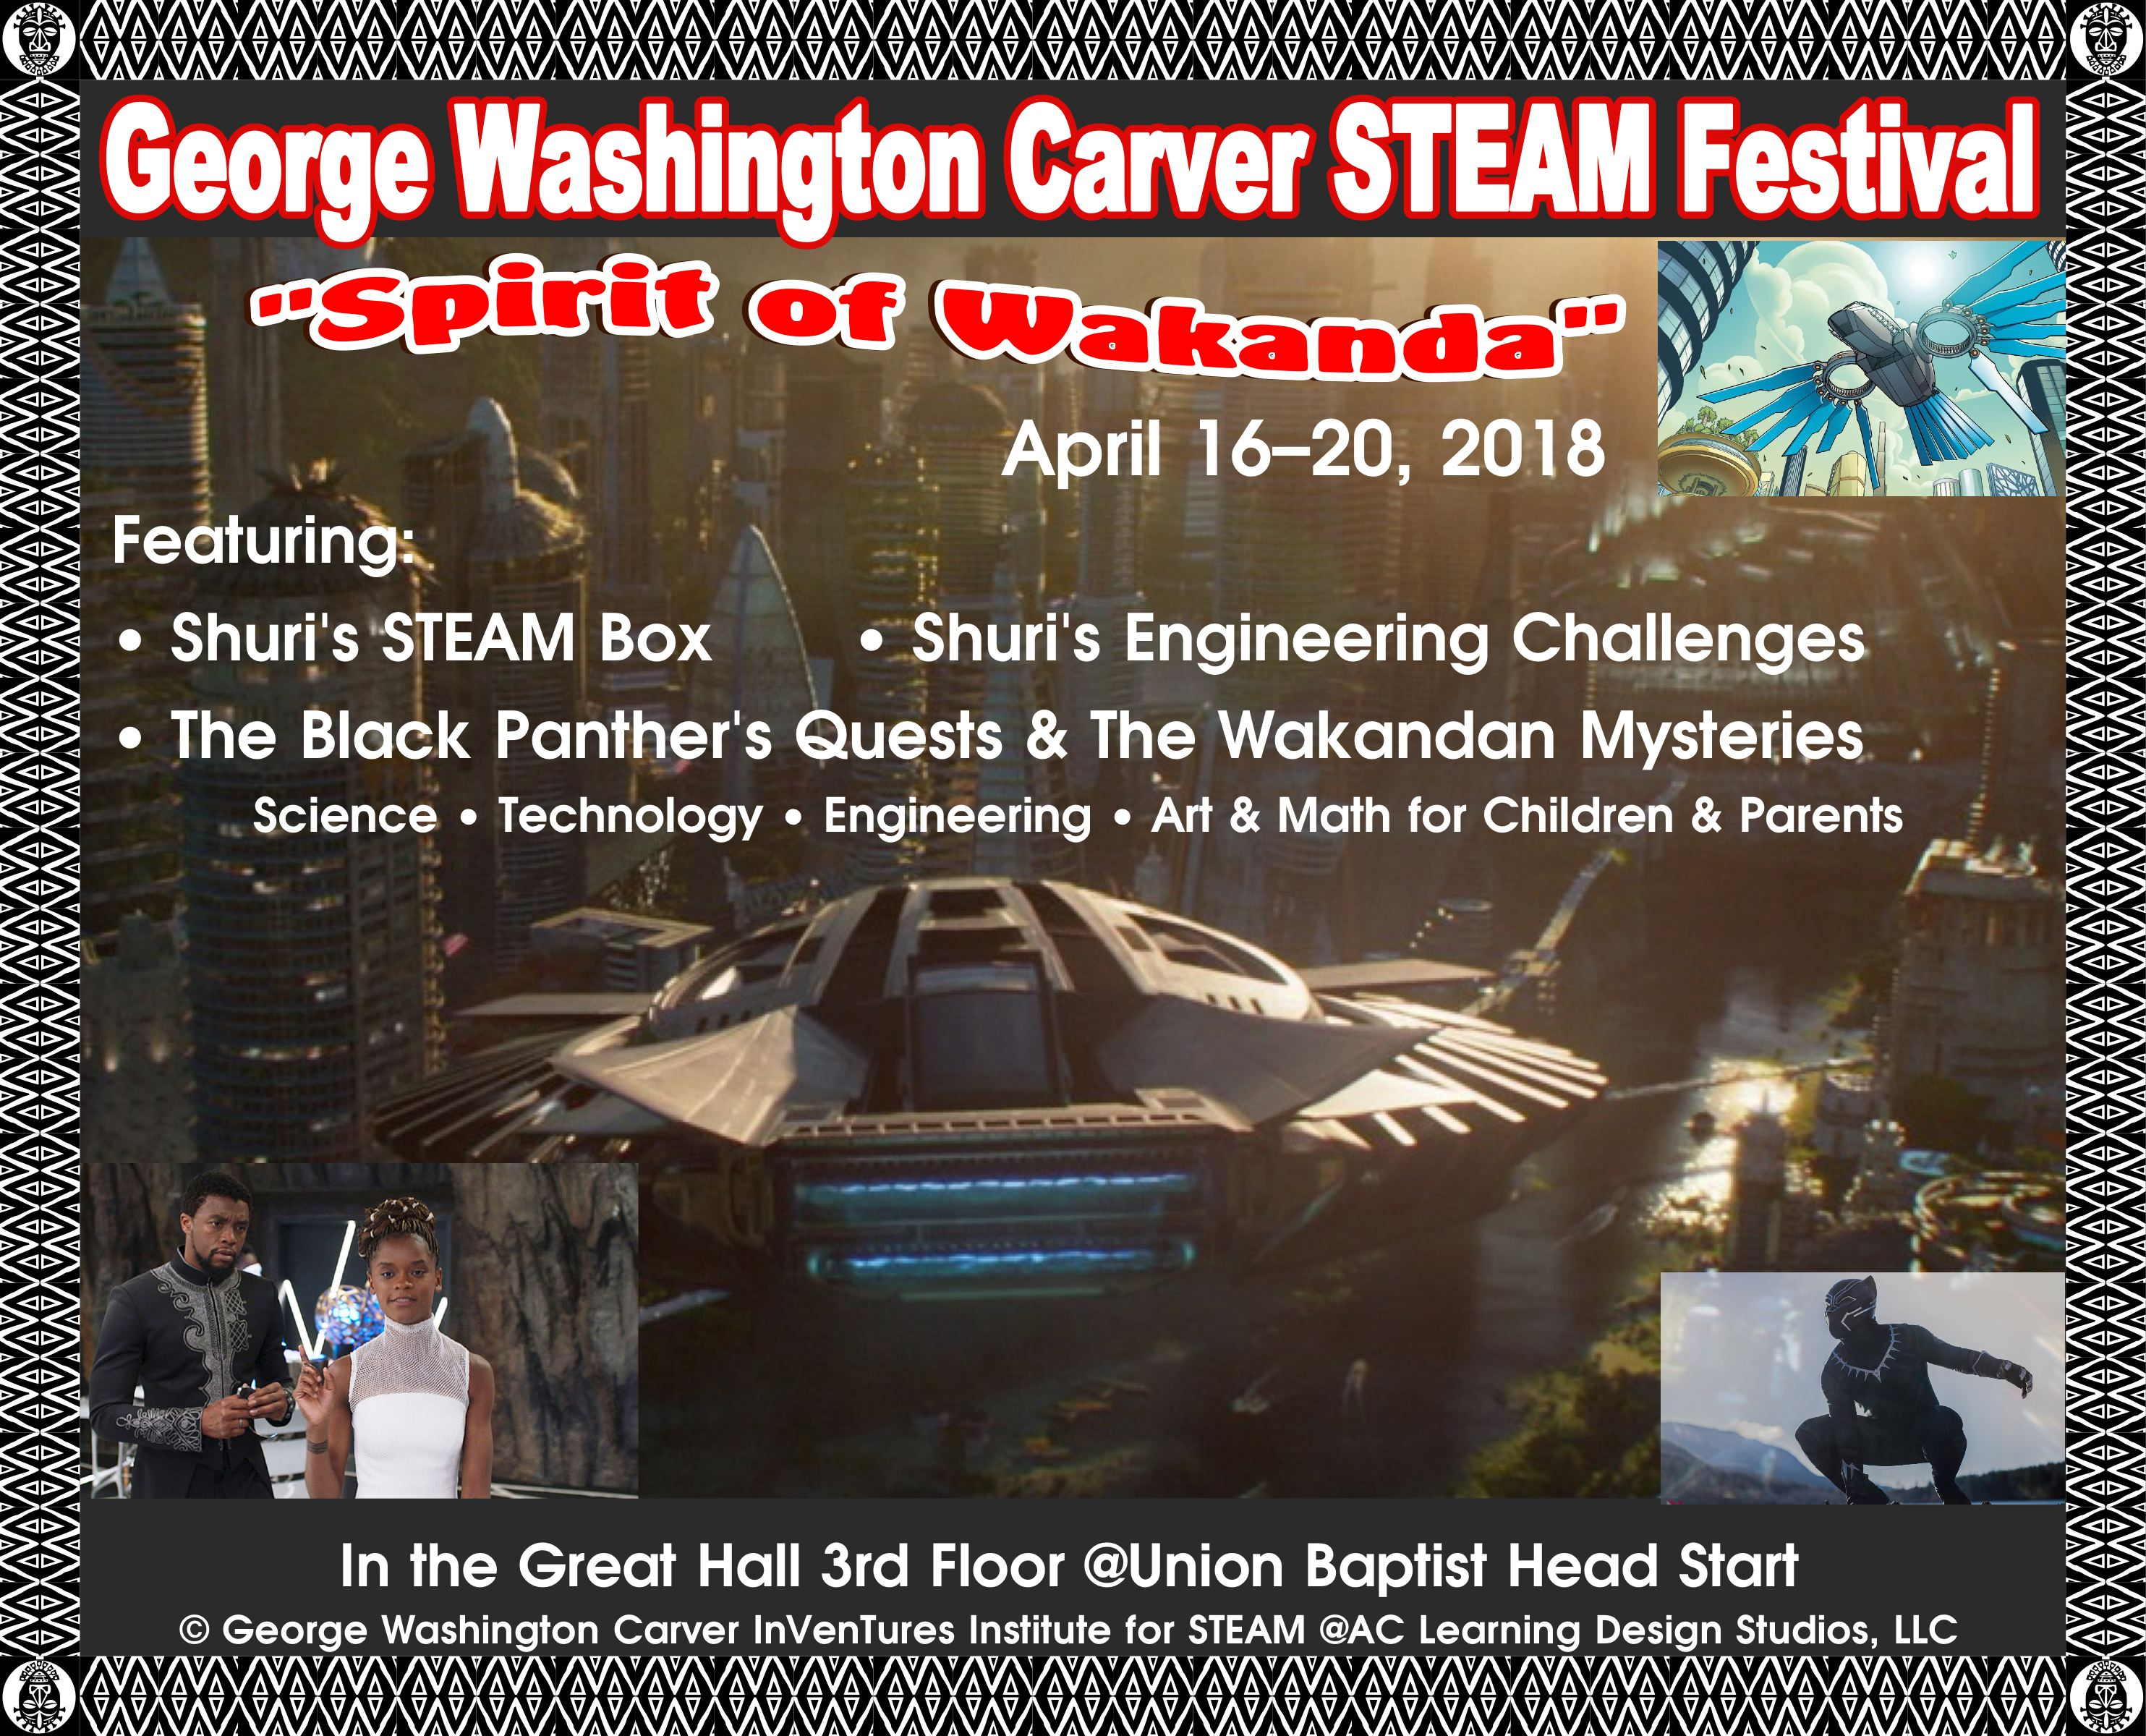 GWC_STEAM_Fest_Promo1.jpeg